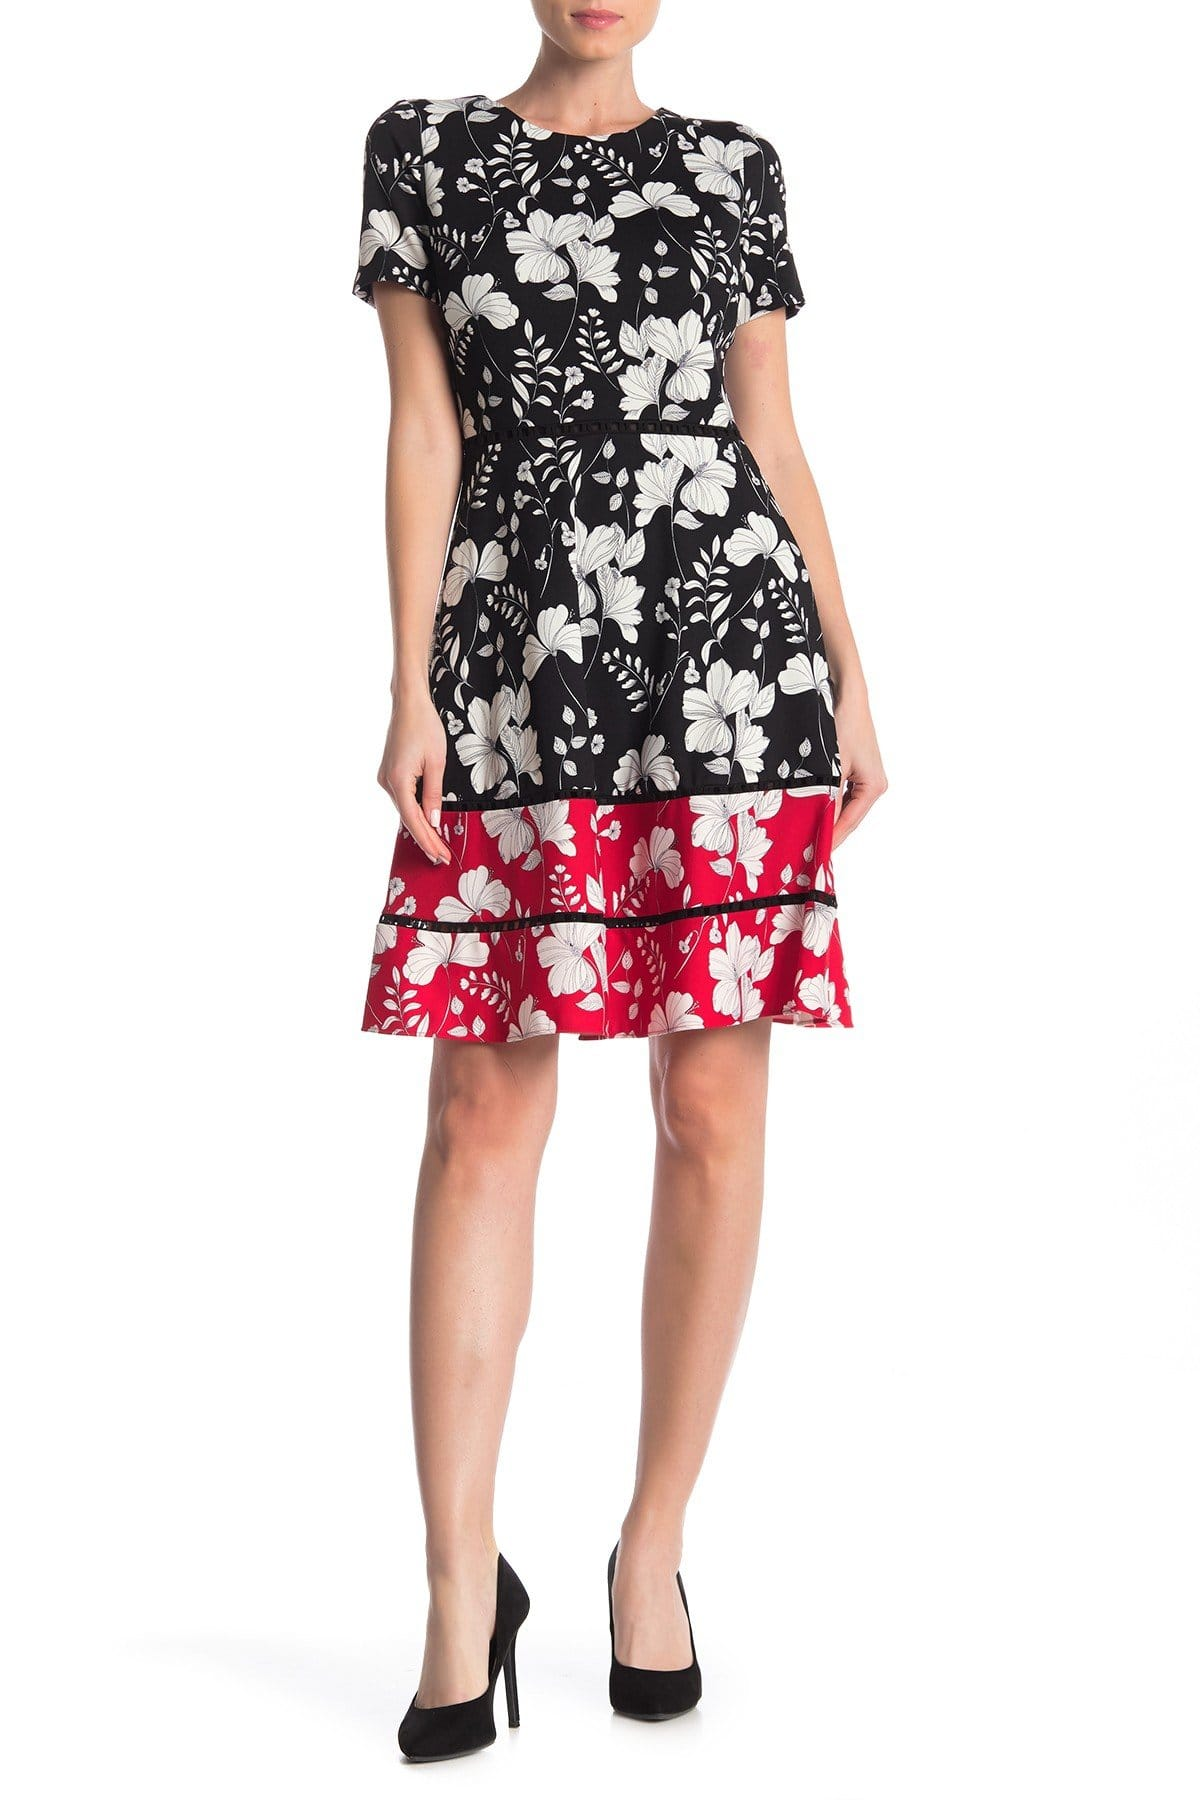 Taylor - 1204M Short Sleeves Floral Print Stretch Crepe Dress In Black and Multi-Color